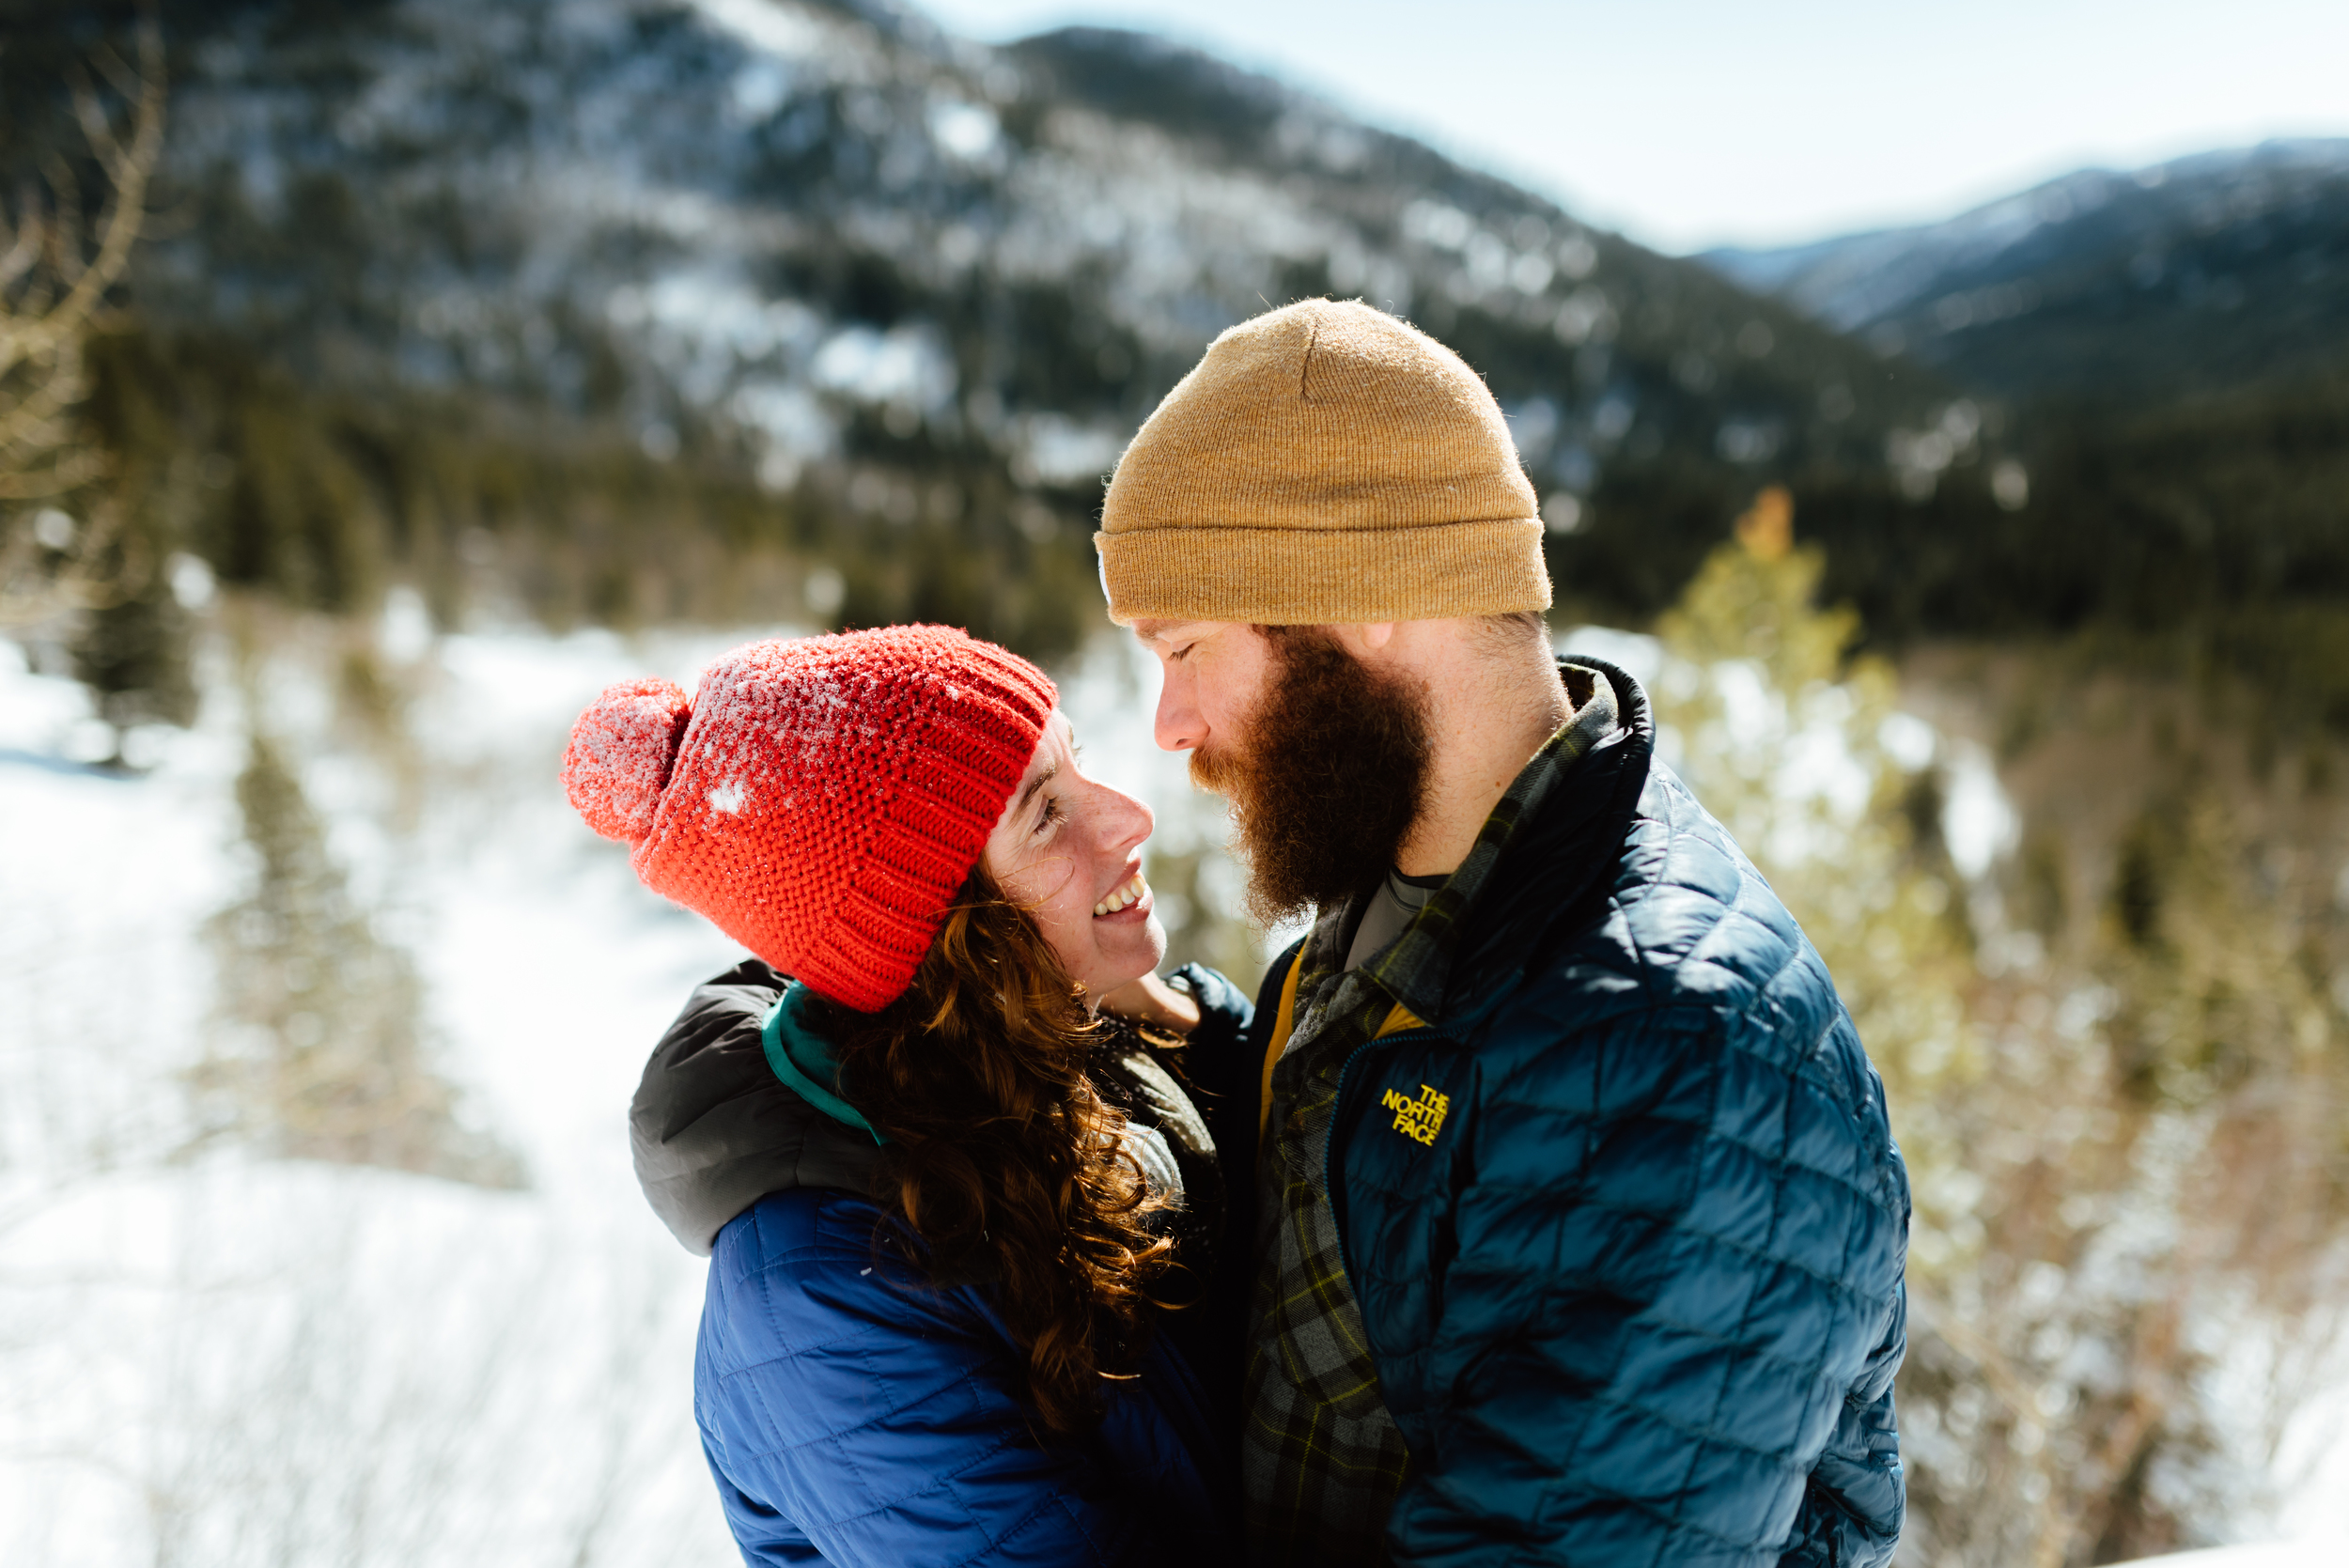 Lost Lake Trail in Indian Peaks Wilderness Area has some of the best views in Colorado's Rocky Mountains. I'd absolutely love to have my own snowshoeing engagement photos taken in this hiking area!| Intimate engagement photos by Colorado engagement photographer, Maddie Mae.